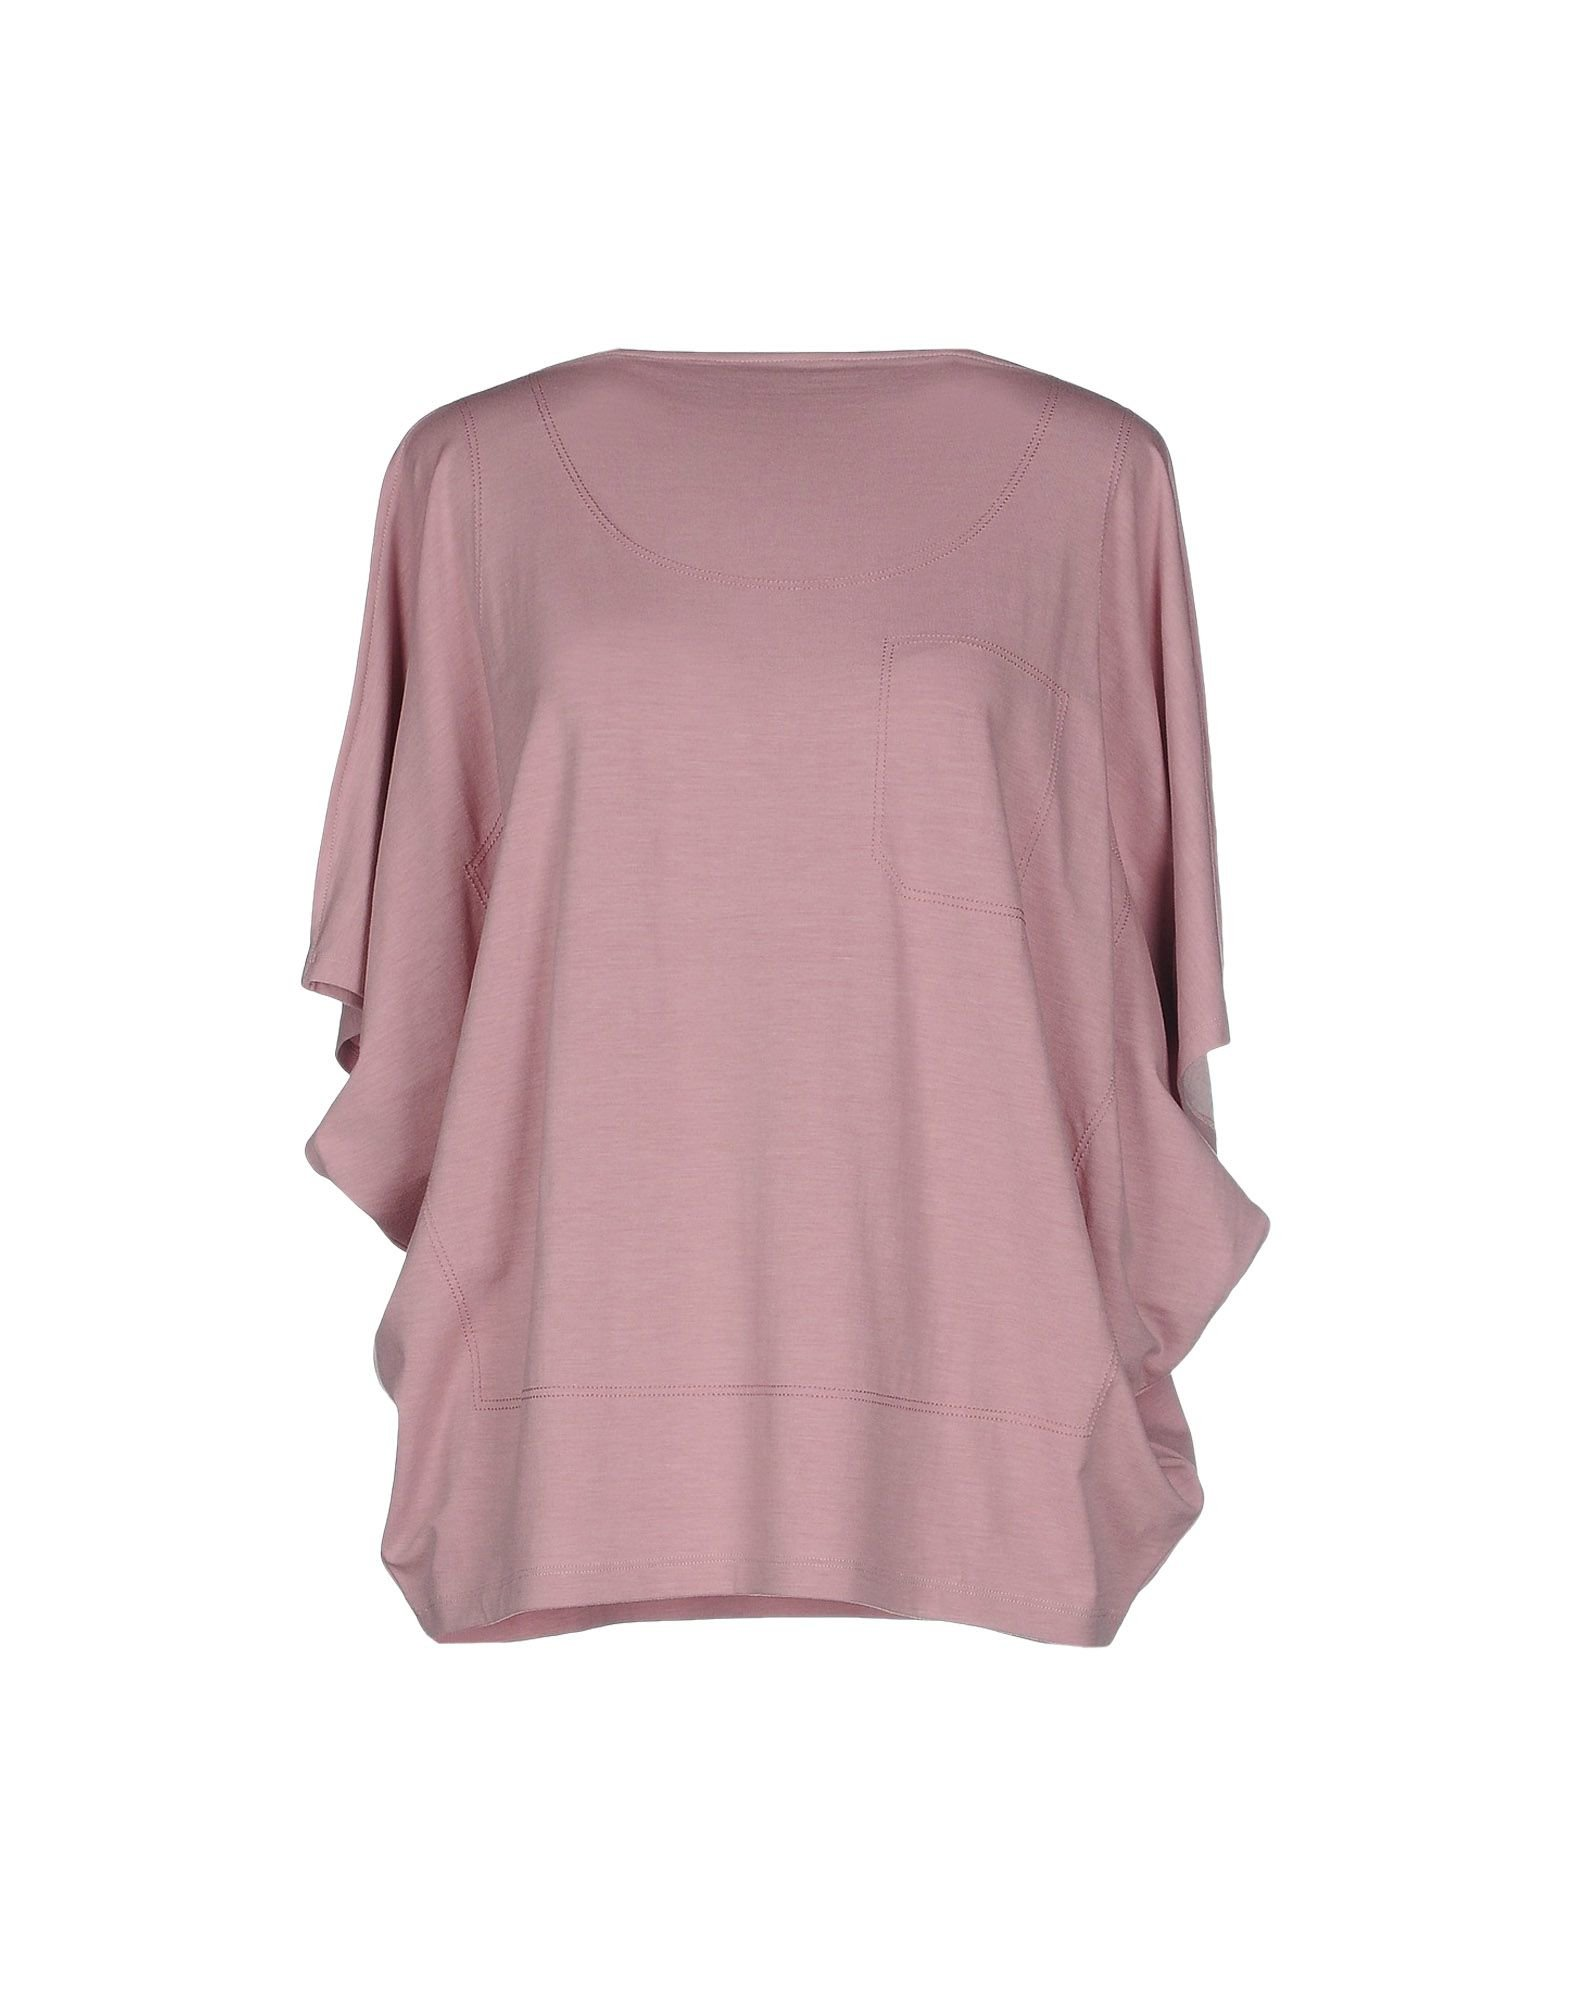 Mm6 by maison martin margiela t shirt in pink light pink for Mm6 maison margiela